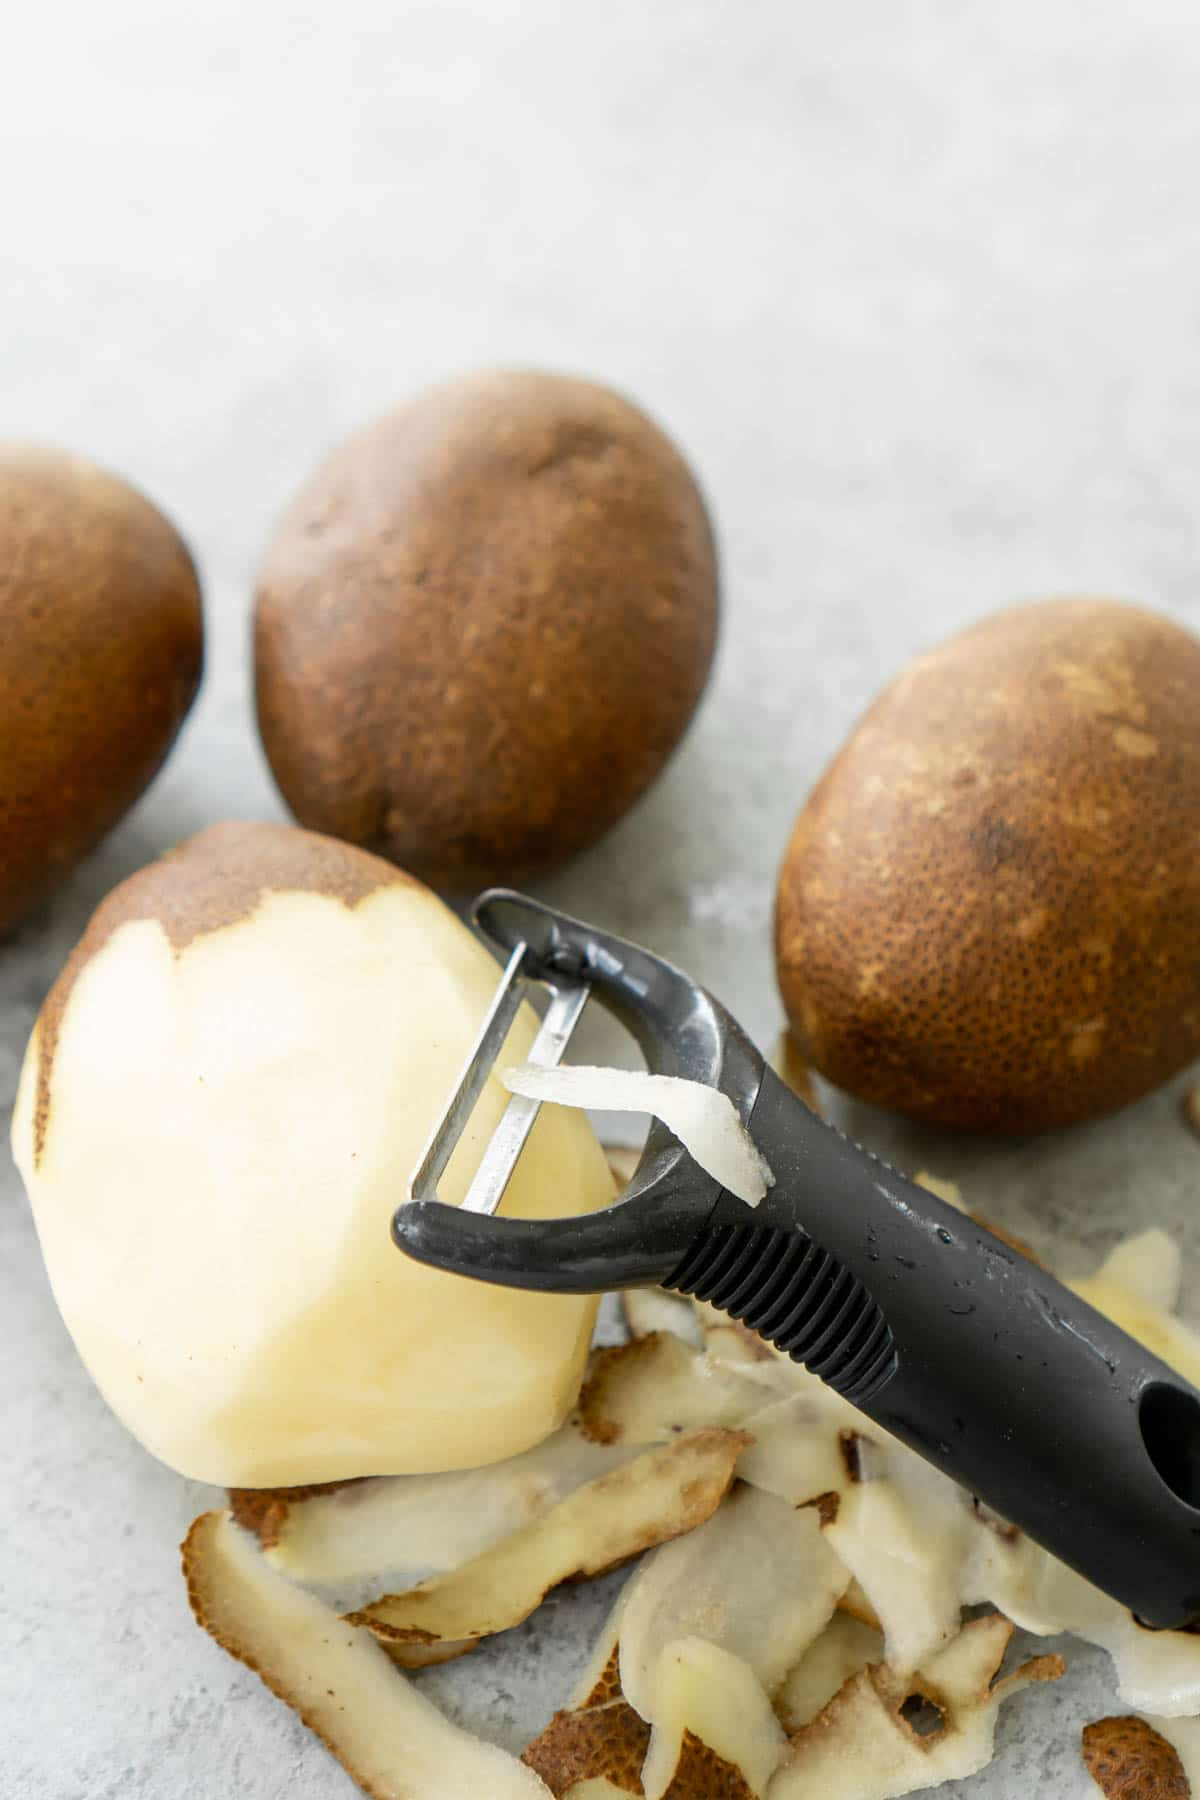 Three potatoes with a half peeled potato, potato peeler, and pile of potato peelings